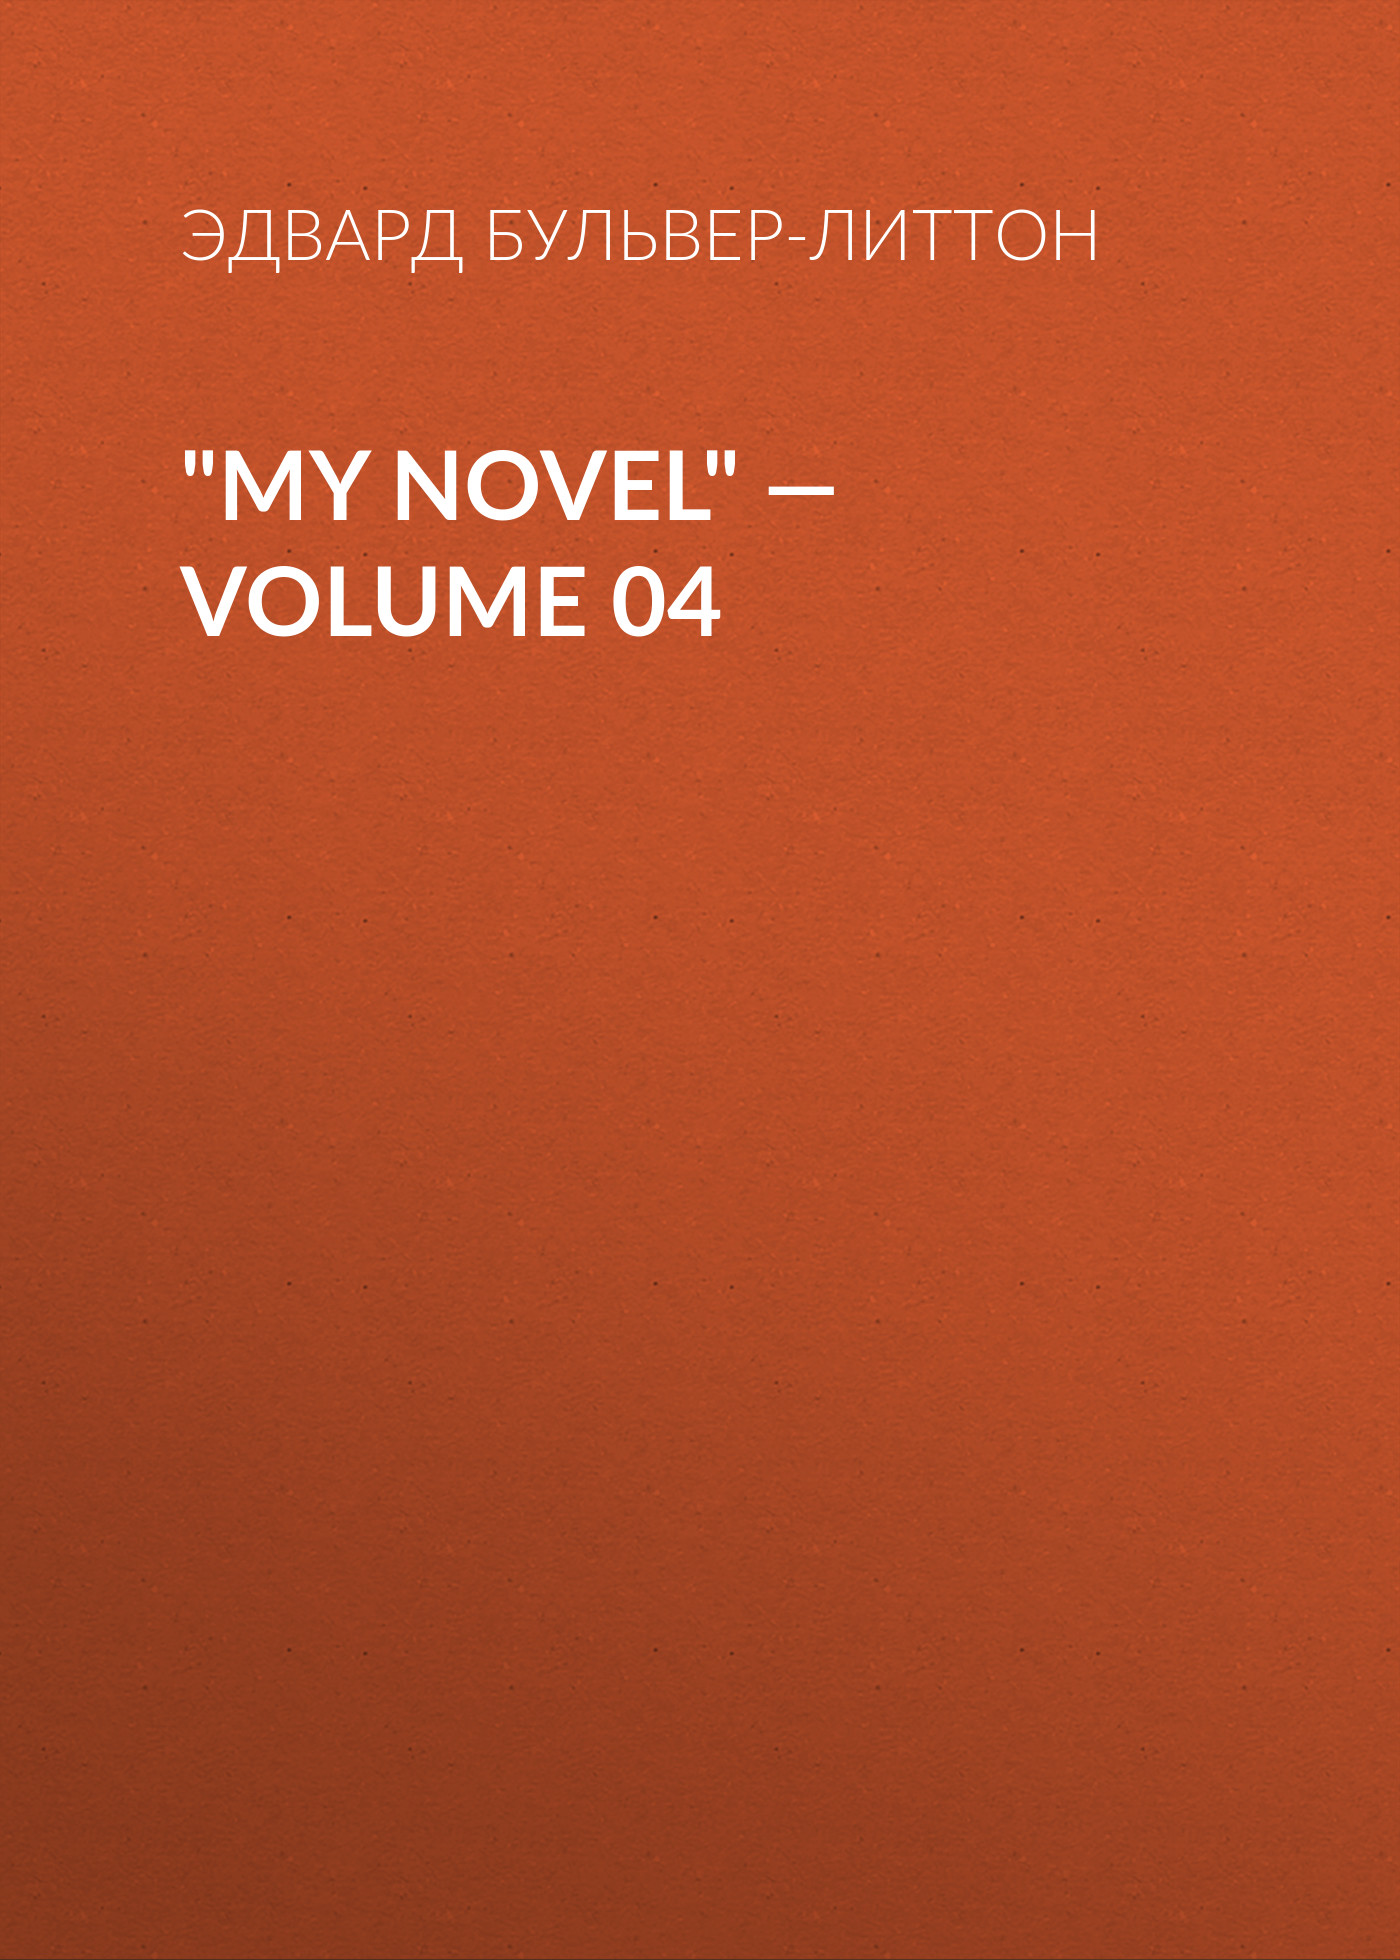 Эдвард Бульвер-Литтон My Novel — Volume 04 эдвард бульвер литтон my novel volume 05